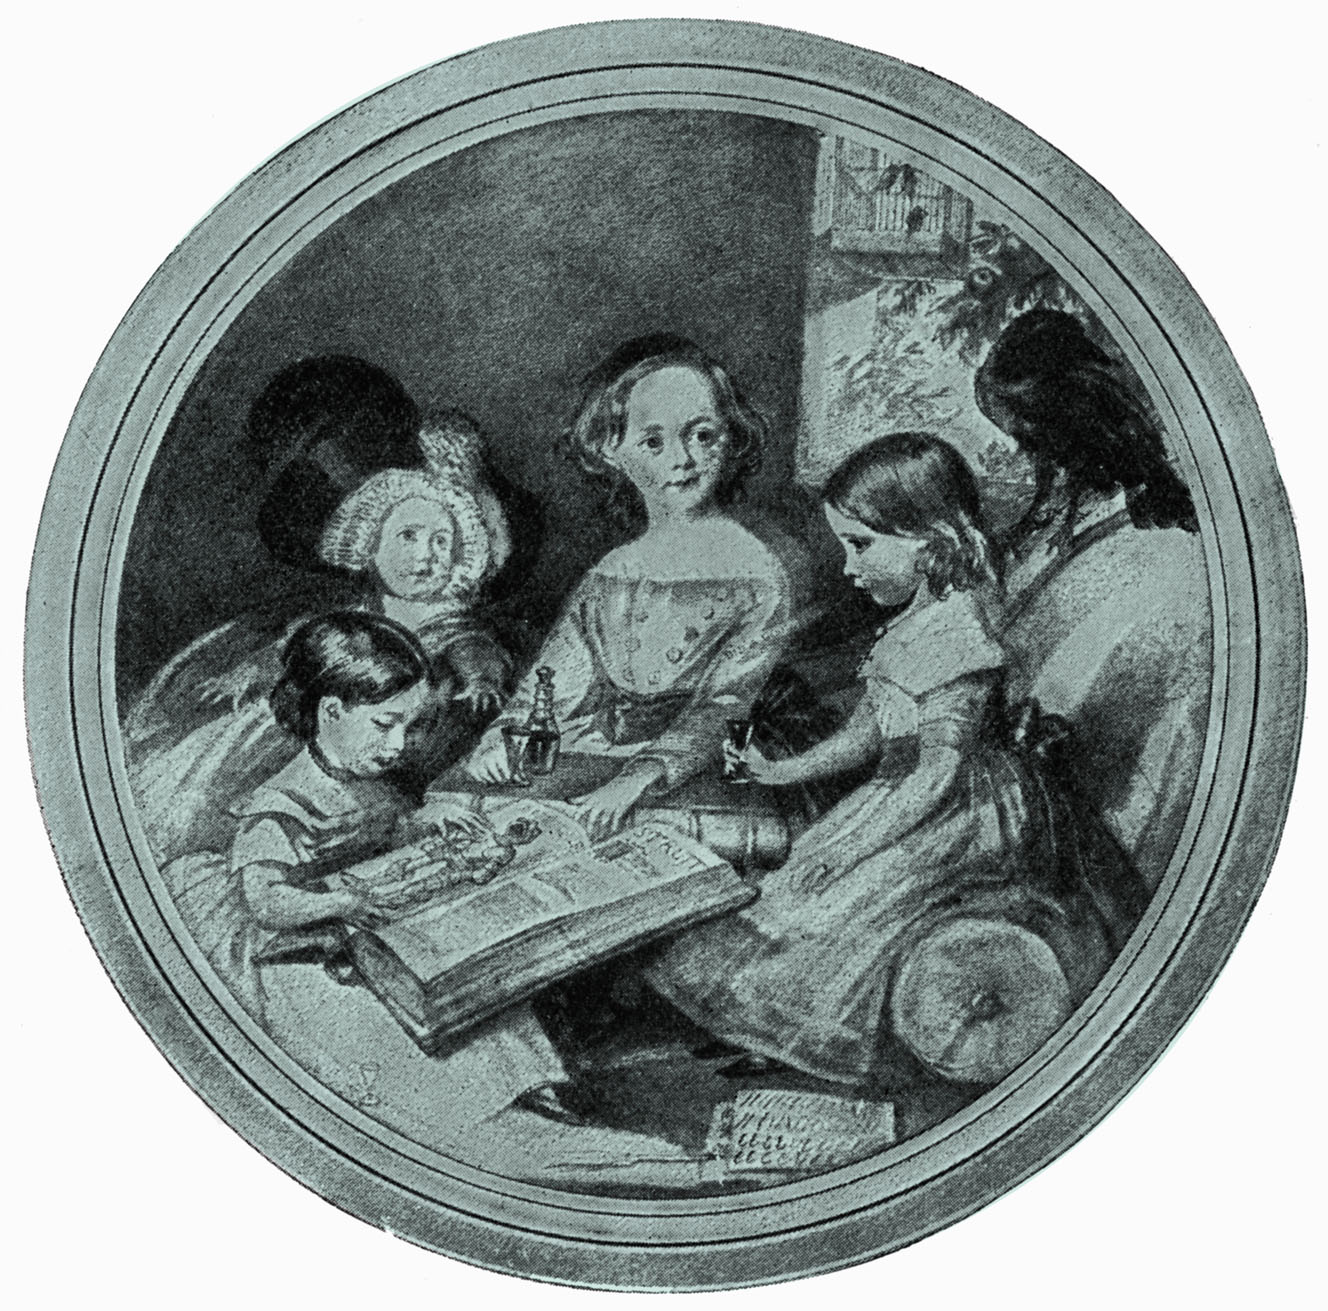 Charles Dickens's children - 1842 Charlie, Mamie, Katie and Wally with Grip the raven. Drawing by Maclise. 7 February 1812 - 9 June 1870. (Photo by Culture Club/Getty Images)